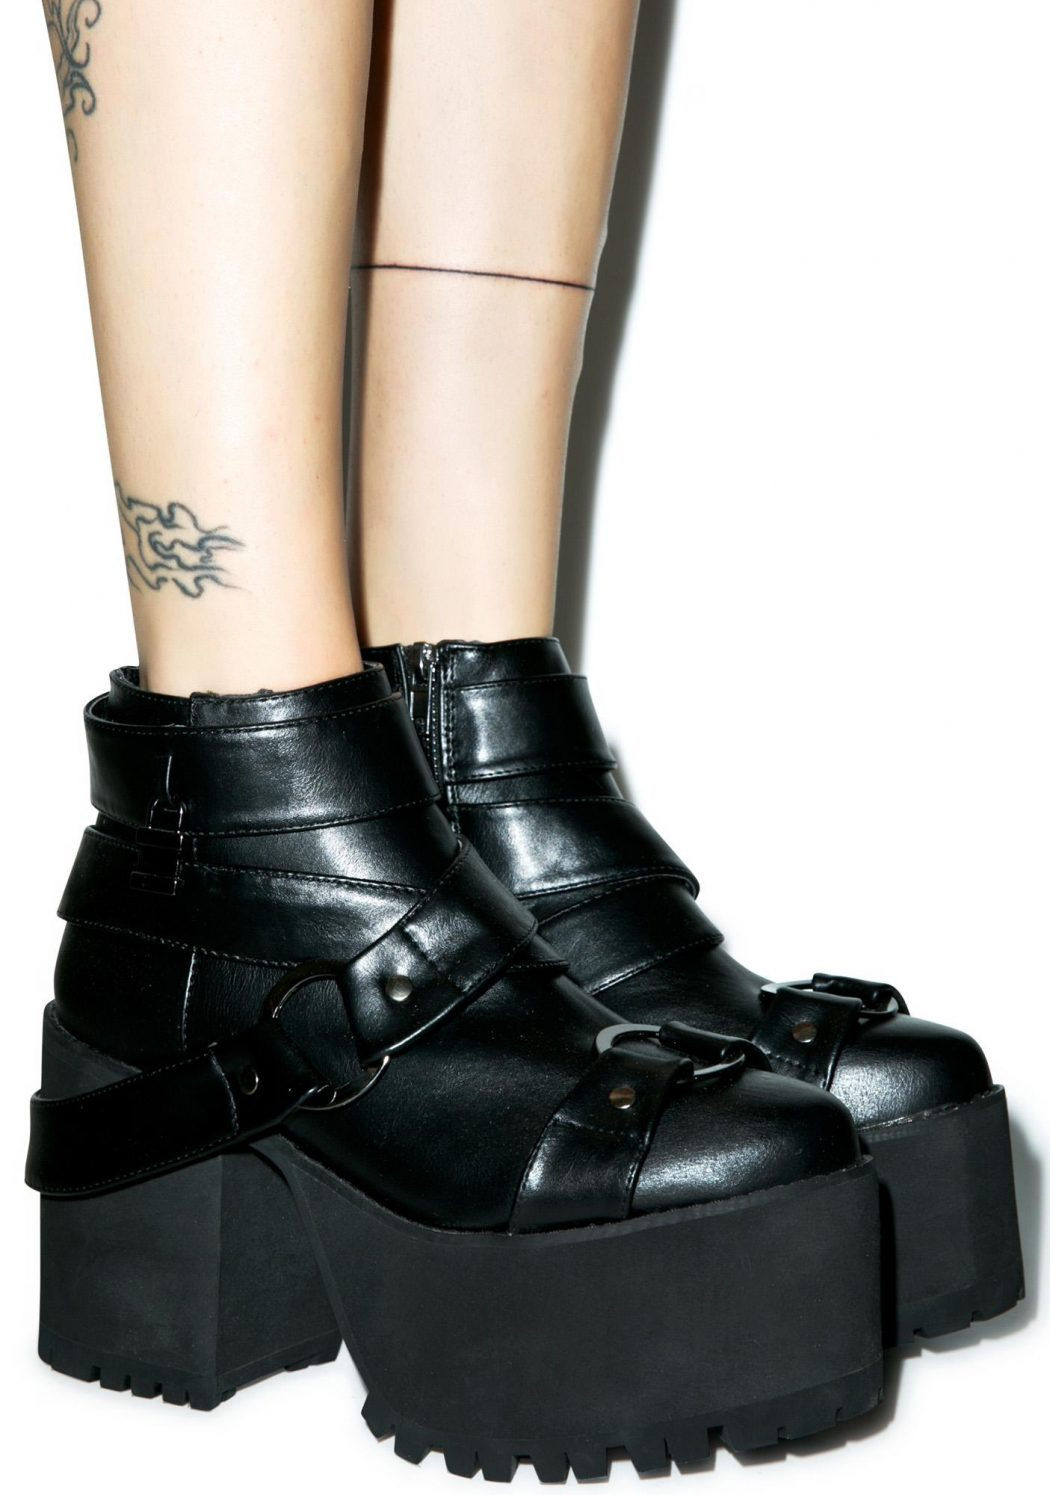 A-Real-Platform-Boots3 Top 10 Most Stylish Boot Trends